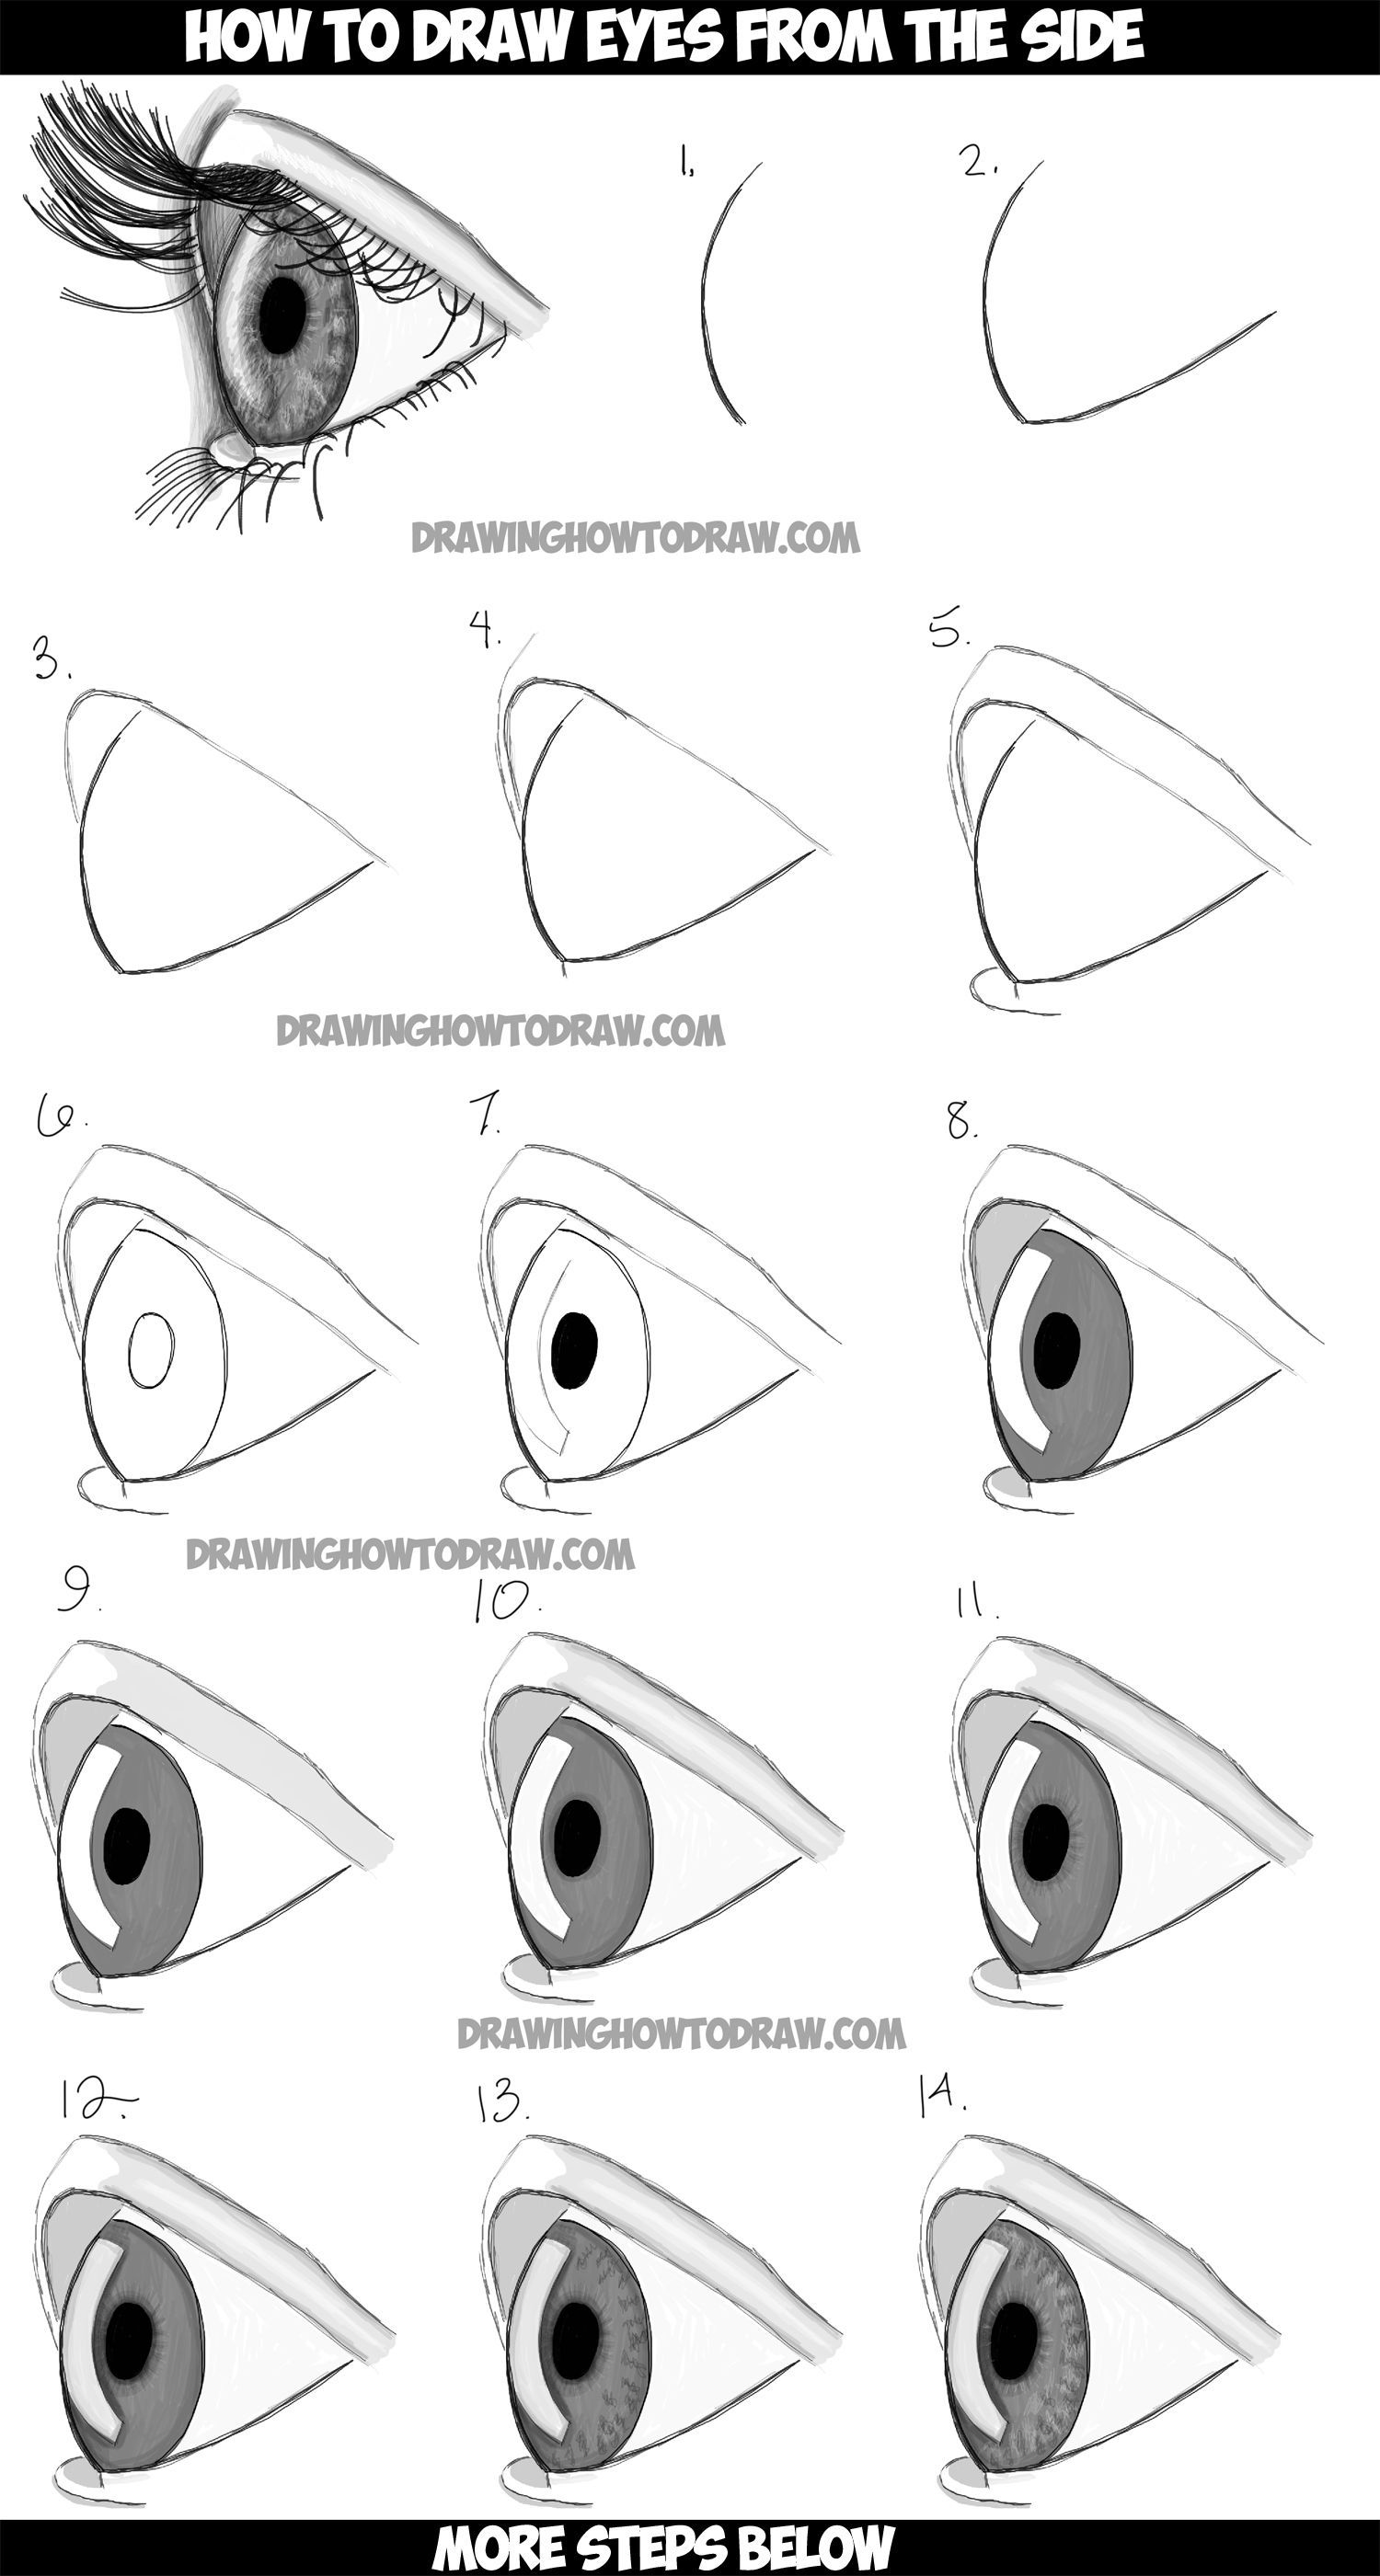 how to draw step by step how to draw realistic eyes from the side profile view how draw step to step by